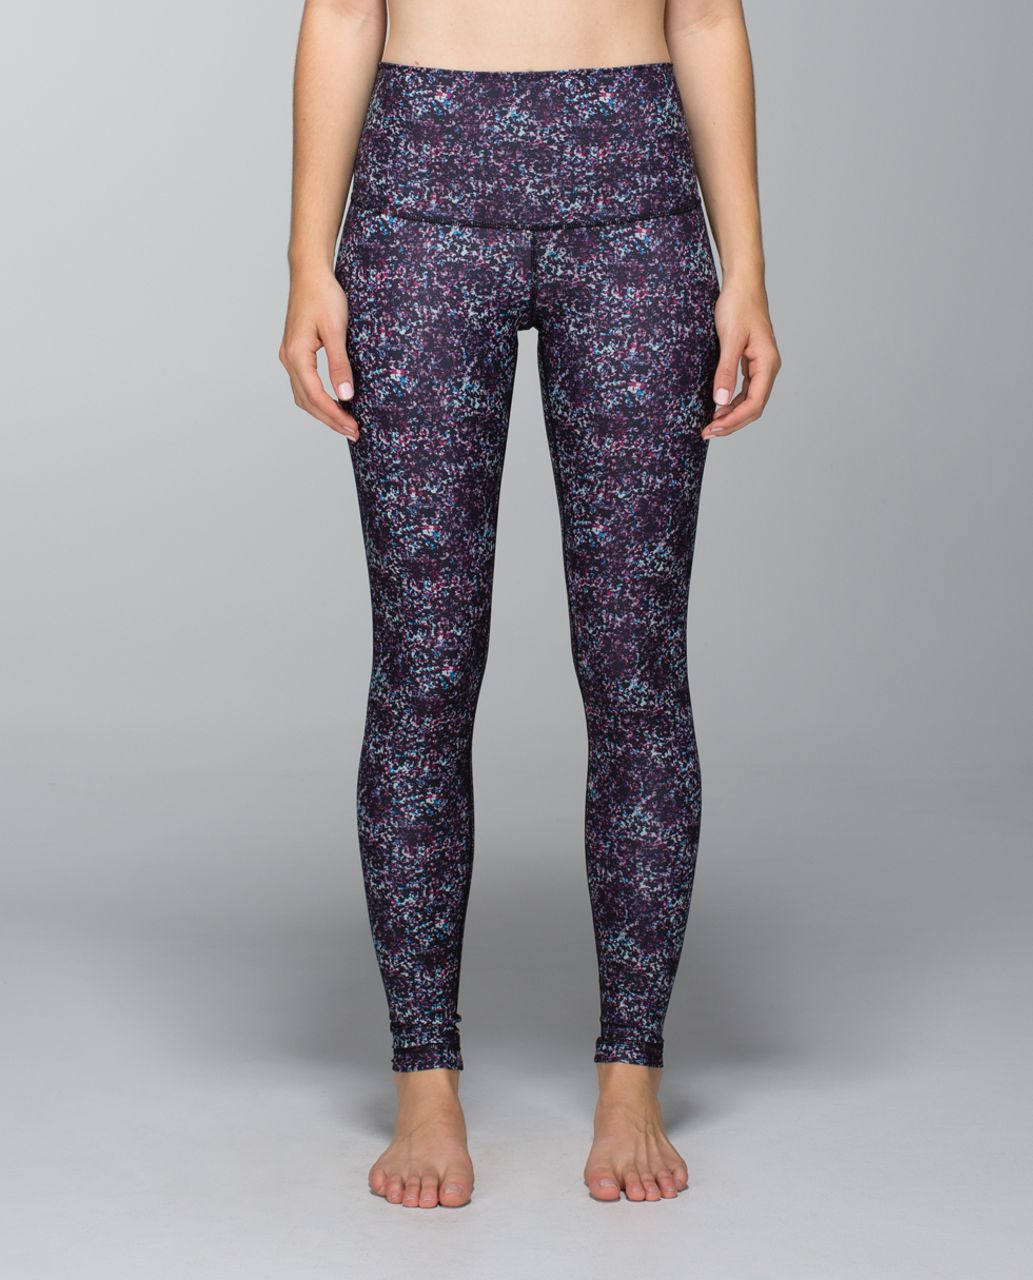 Lululemon Wunder Under Pant *Full-On Luxtreme (Roll Down) - Rocky Road Gusto Blue Bumble Berry